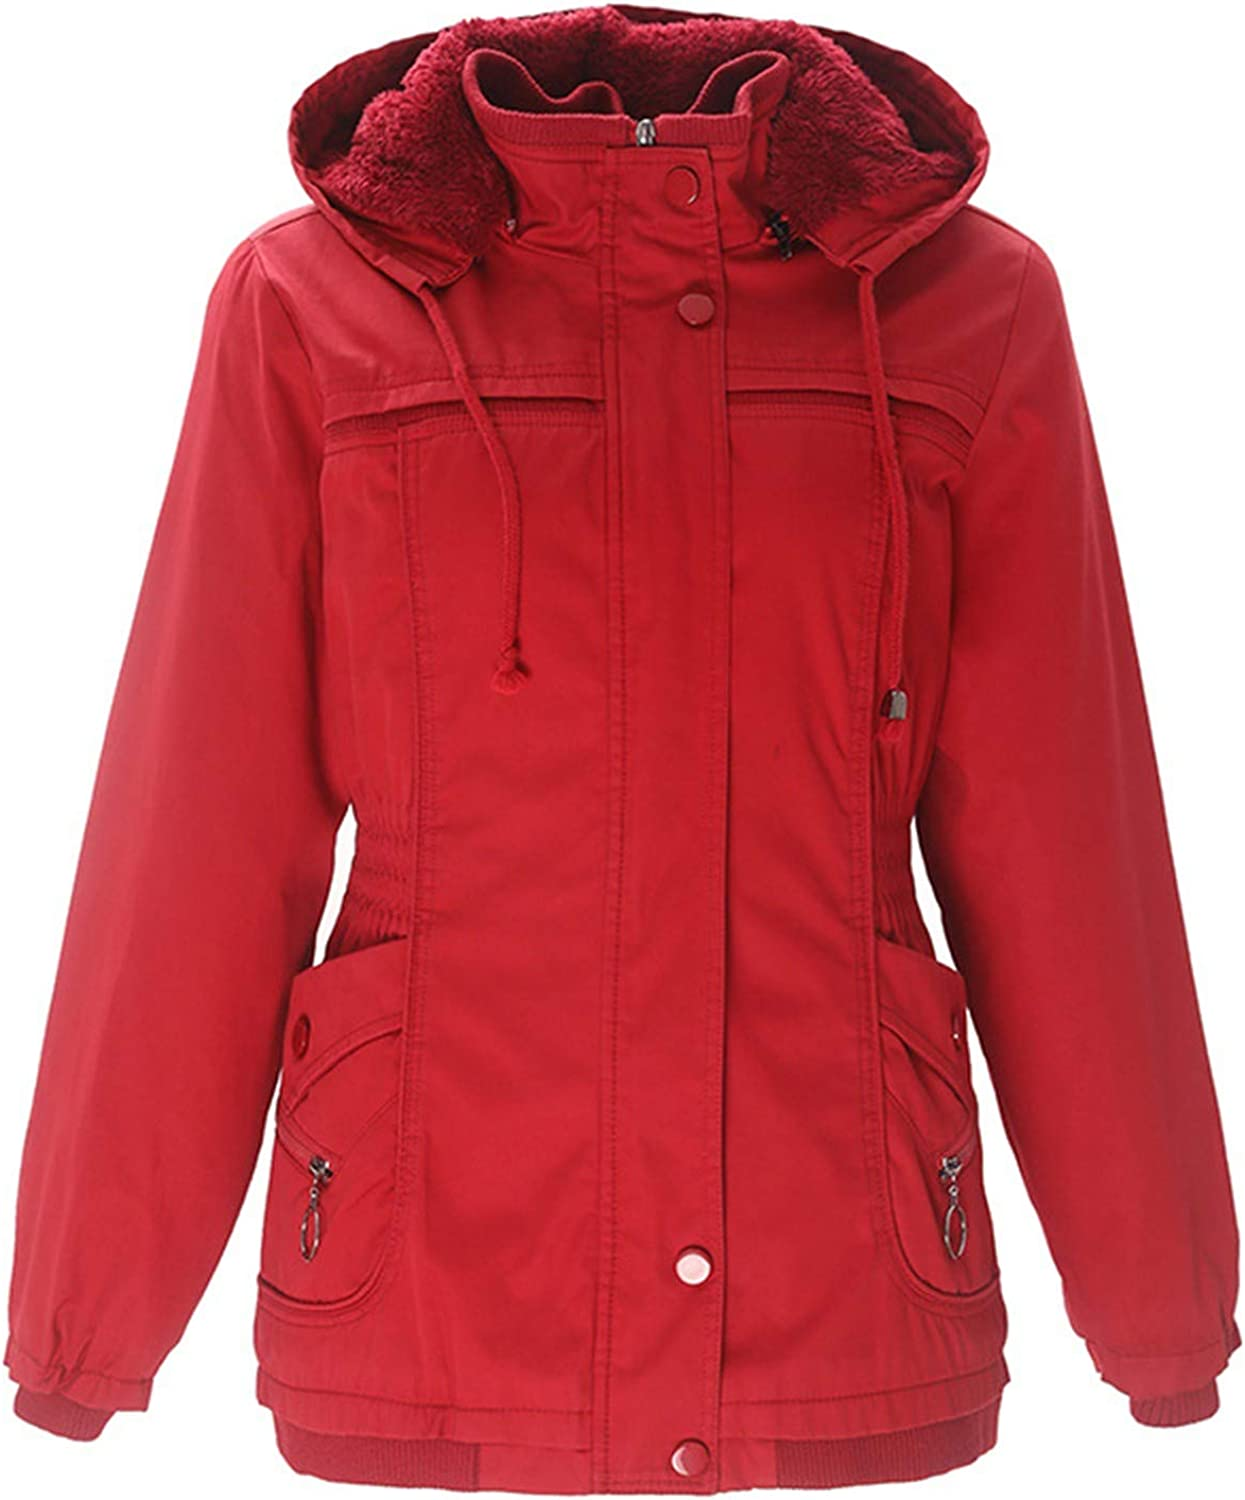 Women's Cotton-Padded Fleece Mid-Length Coat Hoodie Parkas Collar Outwear Jacket with Drawstring